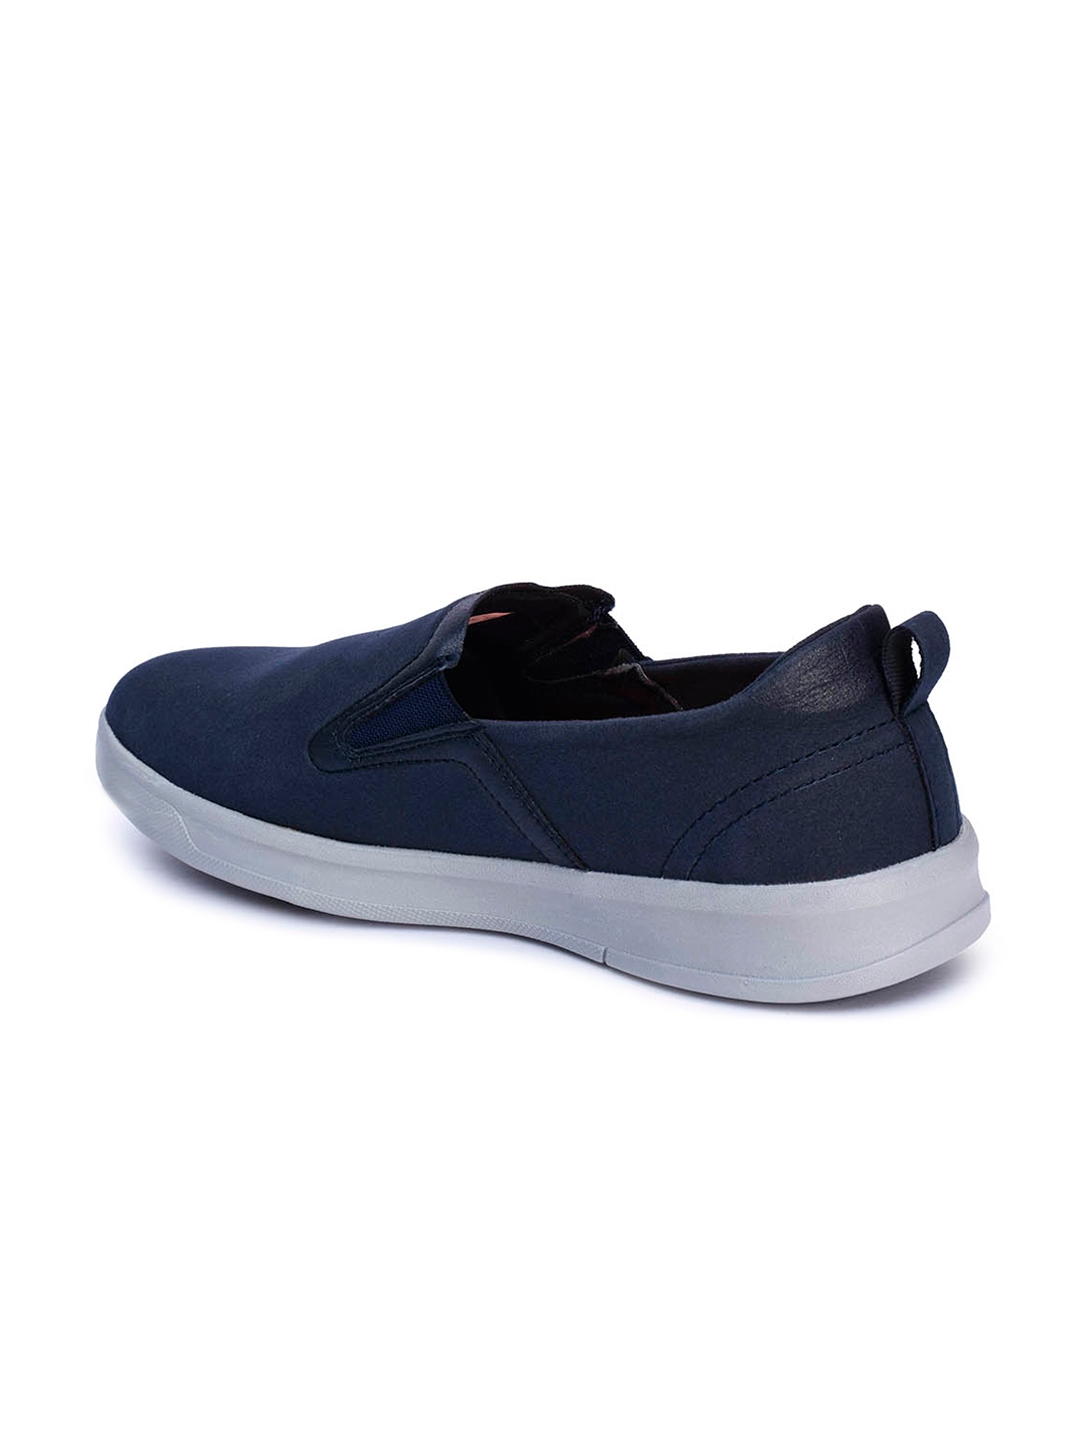 2c63e5d62367d1 Buy Campus Men Style Walk Navy Blue Slip On Sneakers - Casual Shoes ...